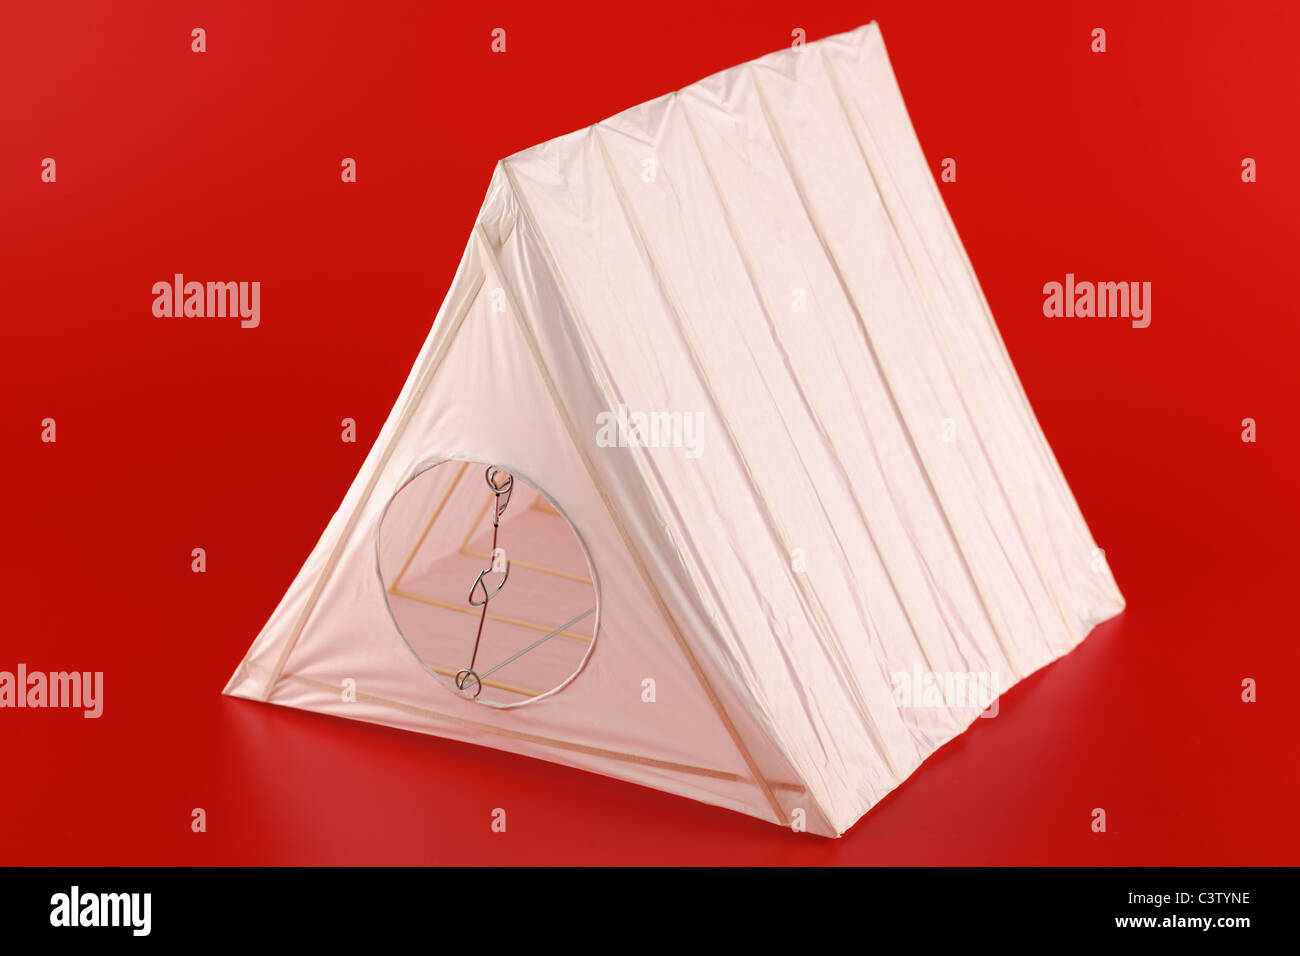 Triangular wire and paper lightshade - Stock Image